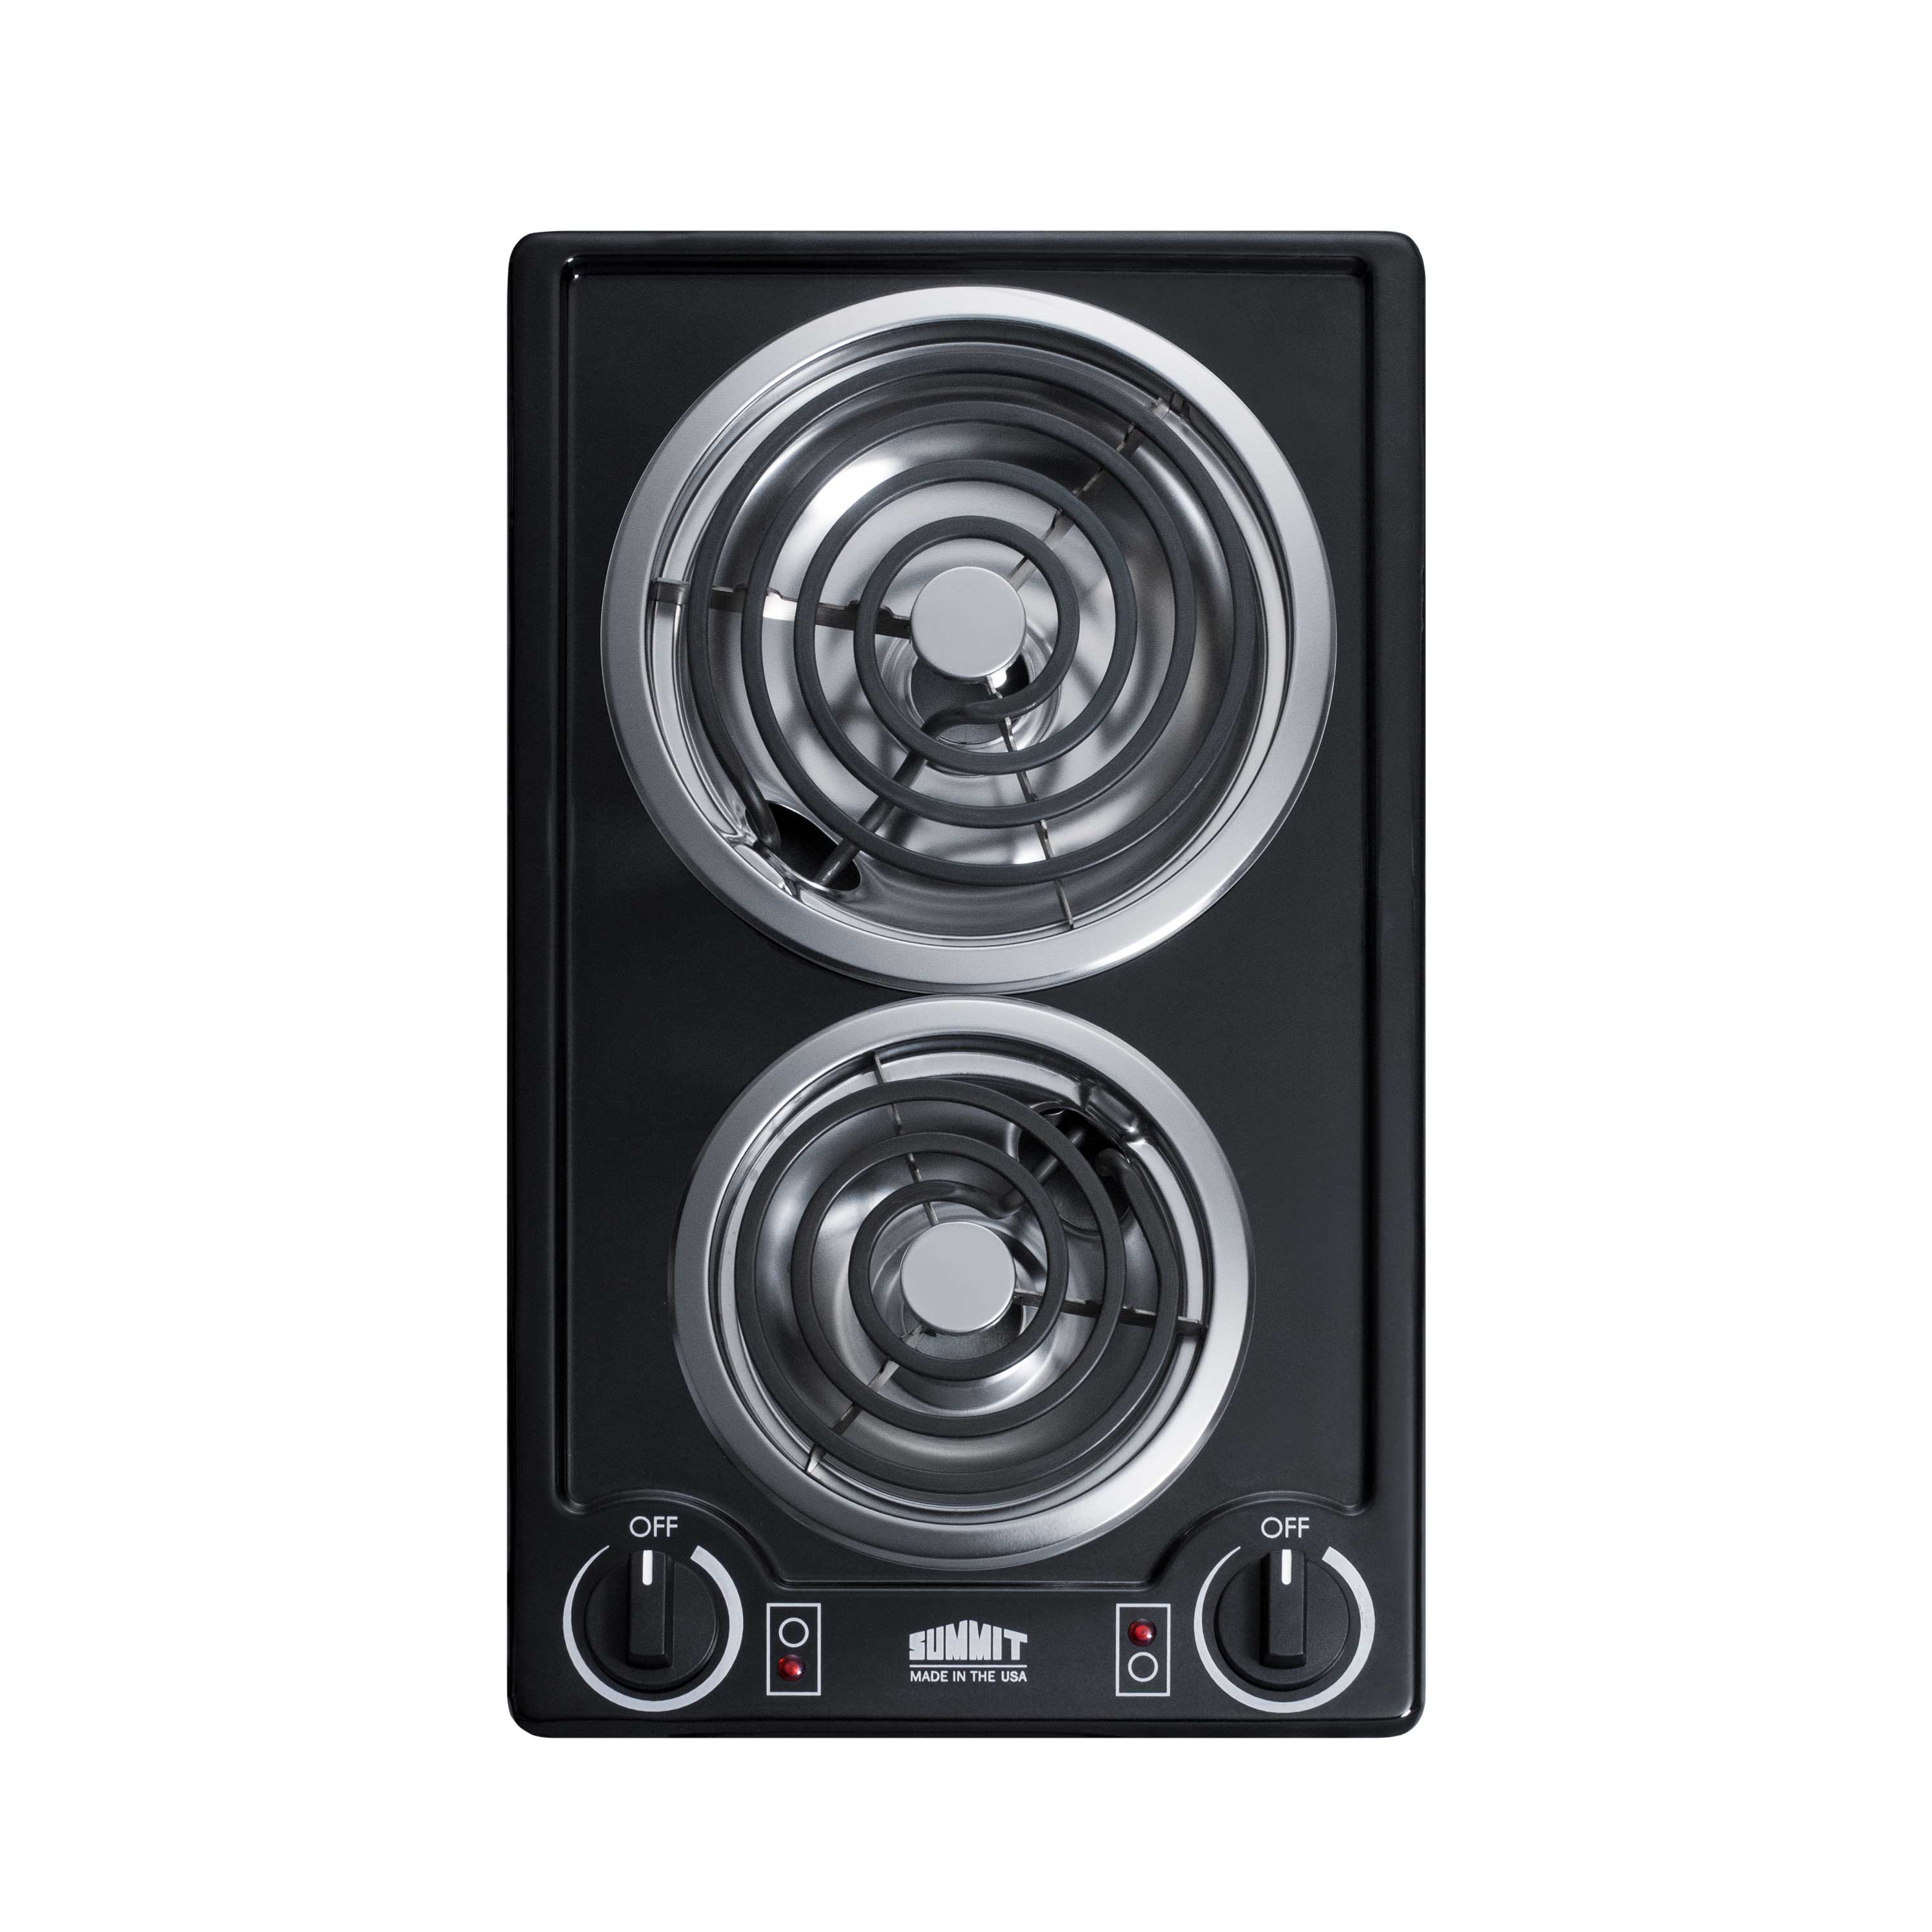 Summit Appliance CCE226BL hotplate, built-in, electric